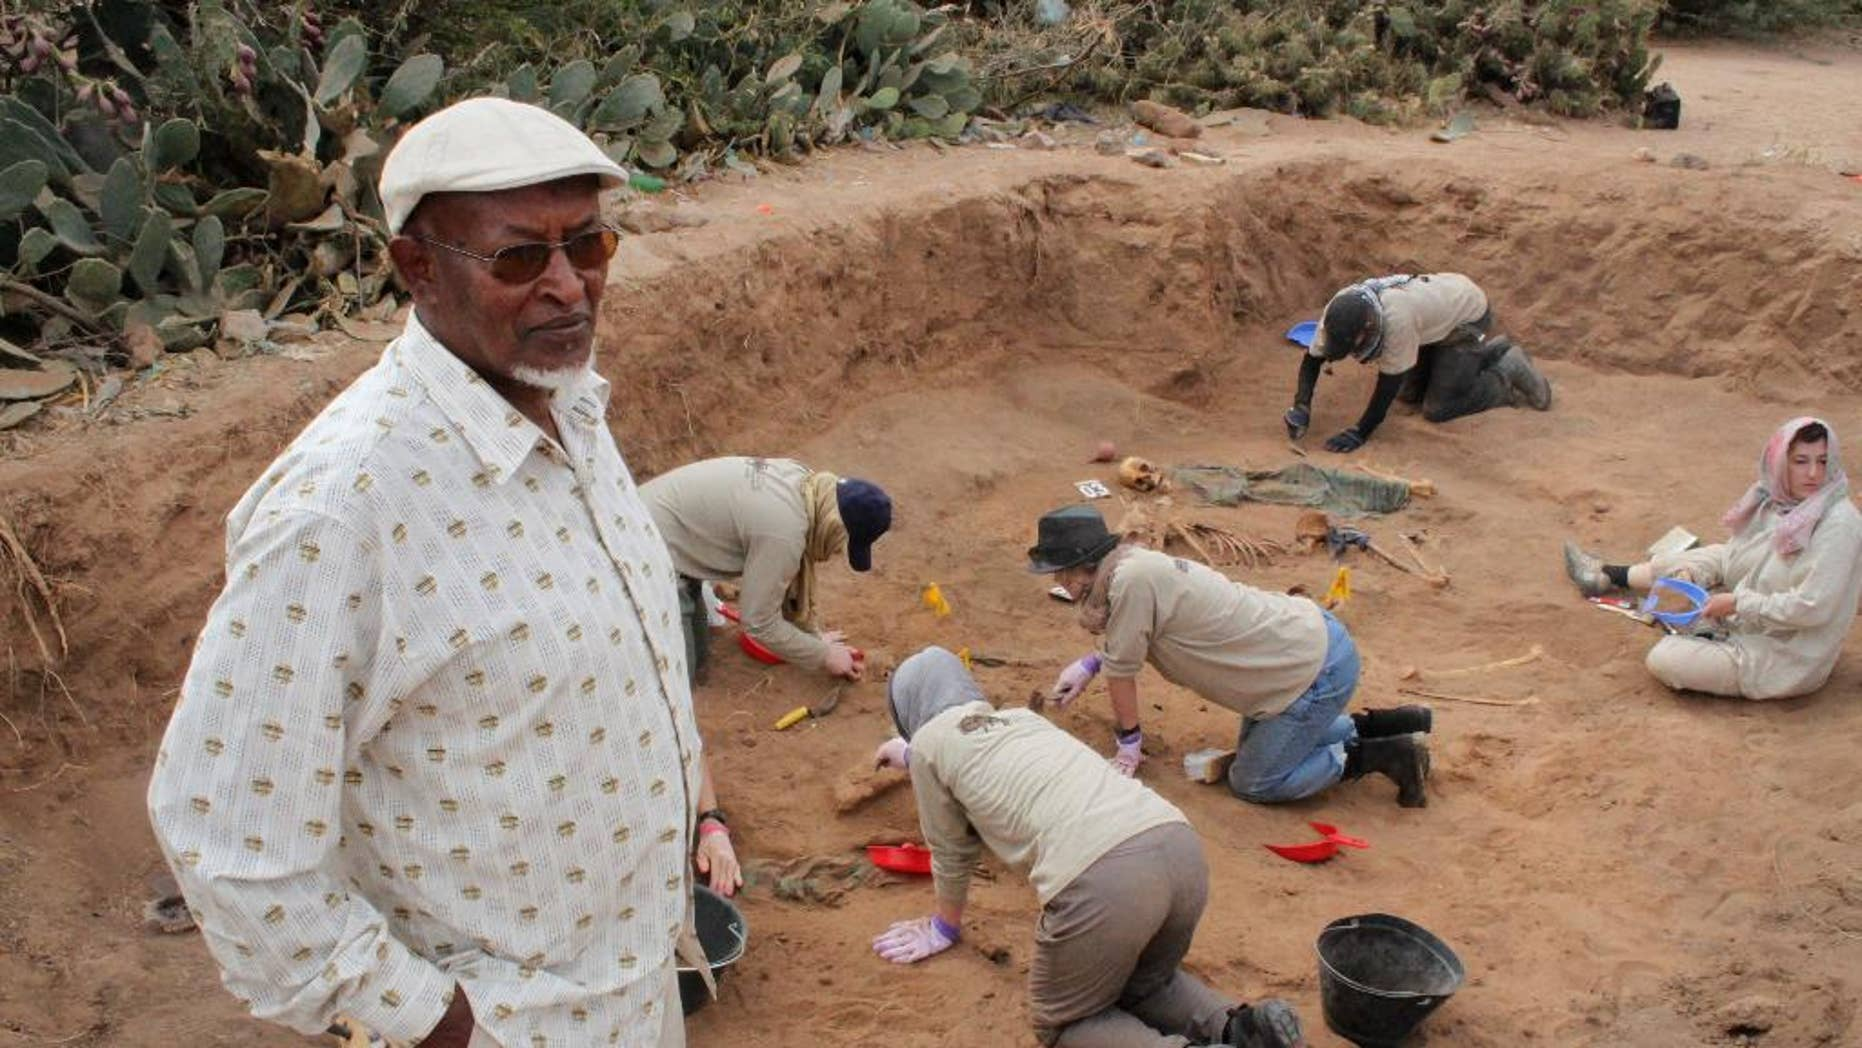 In this photo taken Tuesday, Feb. 18, 2014, Chairman of the Somaliland War Crimes Commission Kadar Ahmed, left, oversees members of the Peruvian Forensic Anthropology Team as they work to uncover bodies buried in a mass grave in Hargeisa, Somaliland, a breakaway region of Somalia.  An American volunteer gently brushes away dirt to reveal the bones of a Somali victim buried in a mass grave some 30 years ago. Tens of thousands of skeletons may lie in mass graves here, on the northern edge of Somalia, where many want to see justice prevail, even if delayed.  Last year 38 bodies were uncovered in two graves by the Somaliland War Crimes Investigation Commission, which is overseeing the work on a third site where another dozen bodies are buried.  (AP Photo/Jason Straziuso)